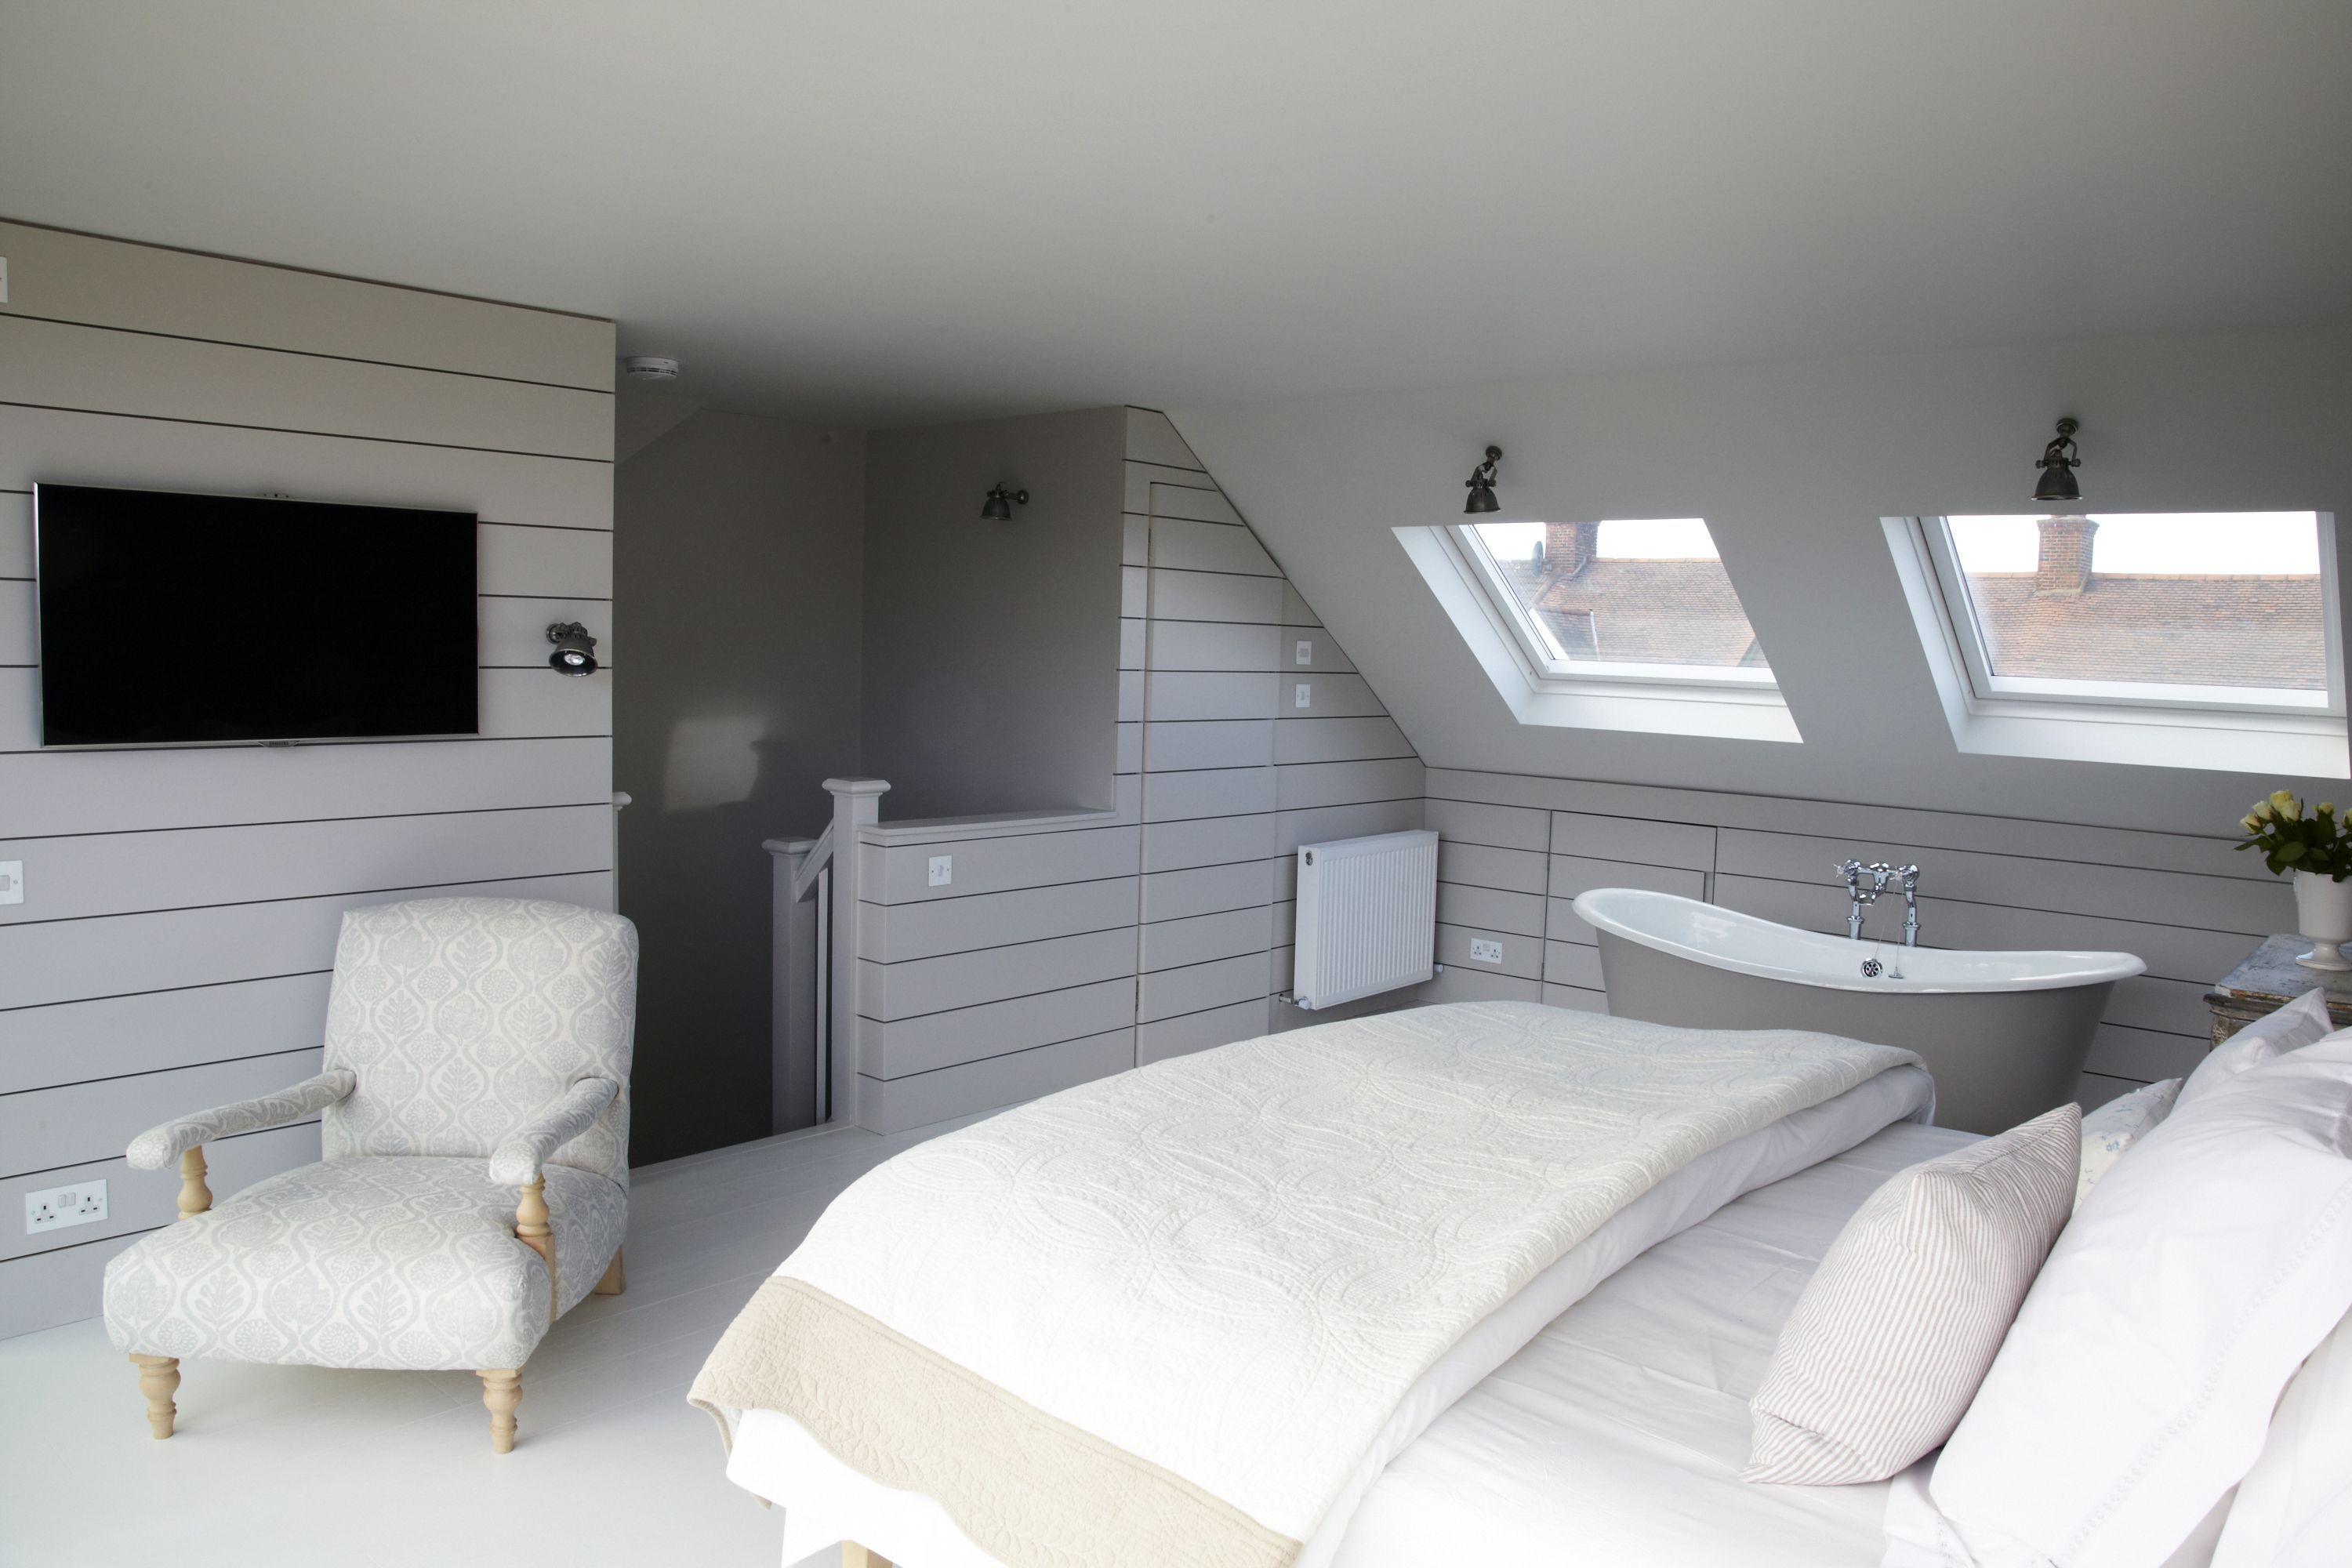 breathtaking loft bedroom conversion ideas | Stylish loft conversion | Loft spaces, Loft conversion ...